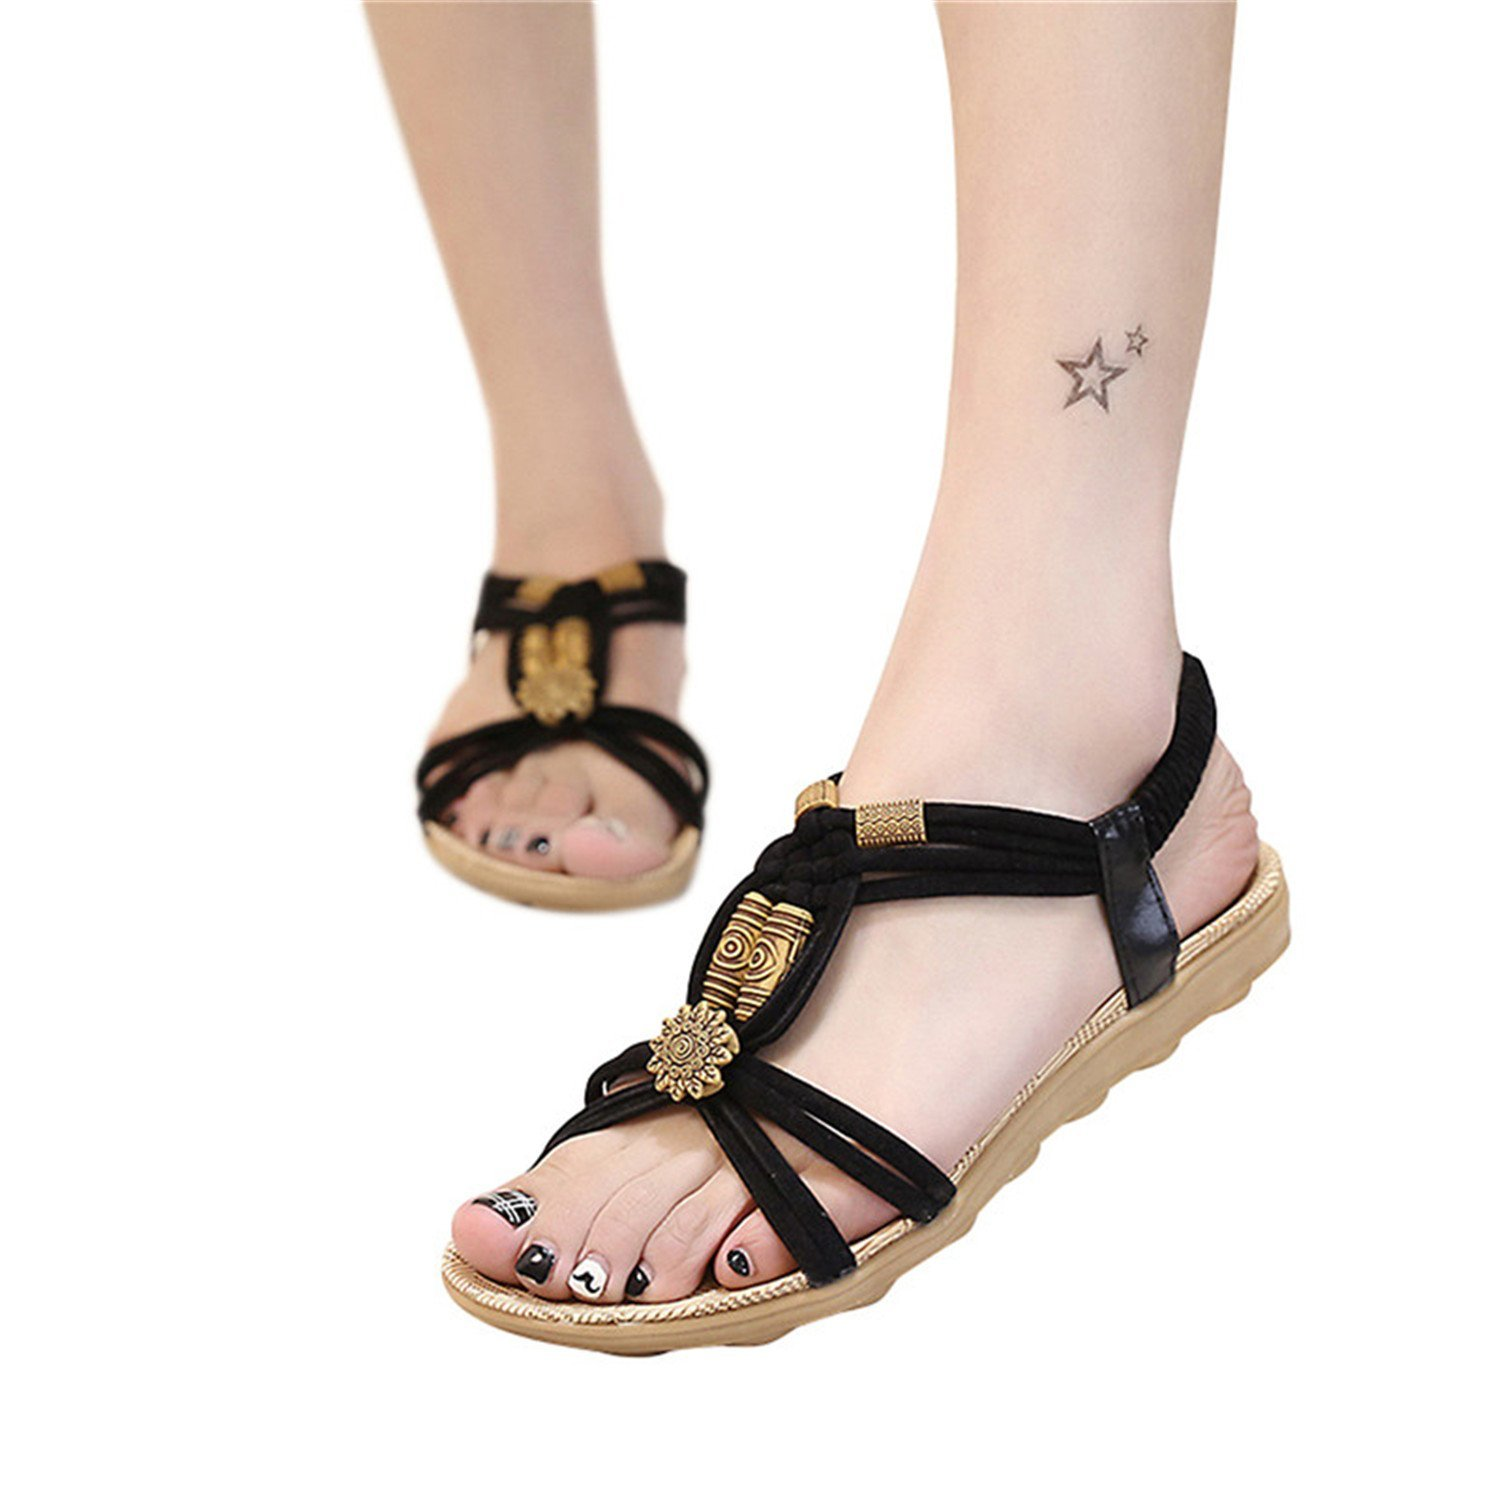 Henraly New Summer Sandals Women Lace-Up Flat Fashion Women Shoes Casual Occasions Comfortable Female Students Sandals